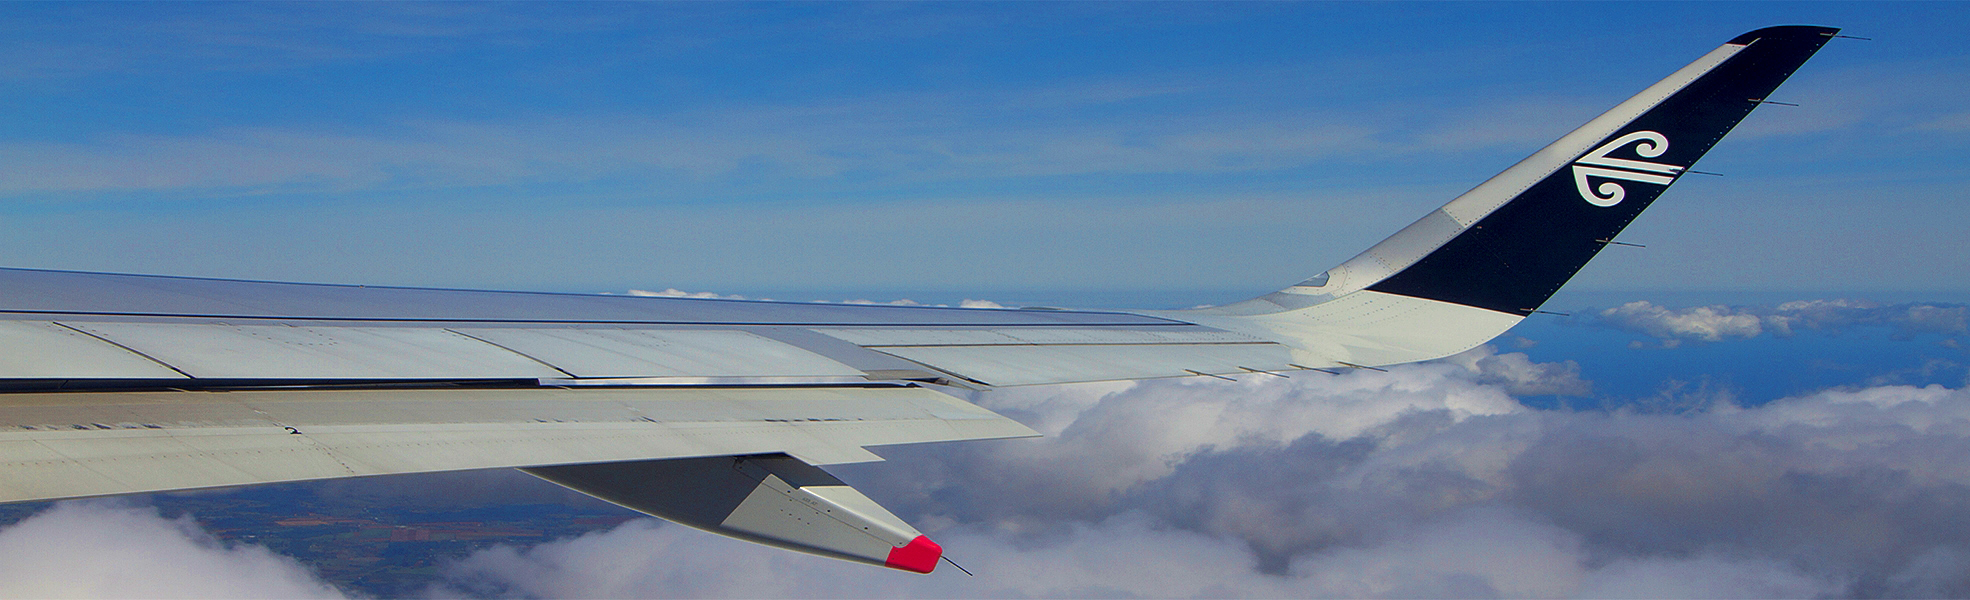 Clouds AirNZ Wing 1970x600a